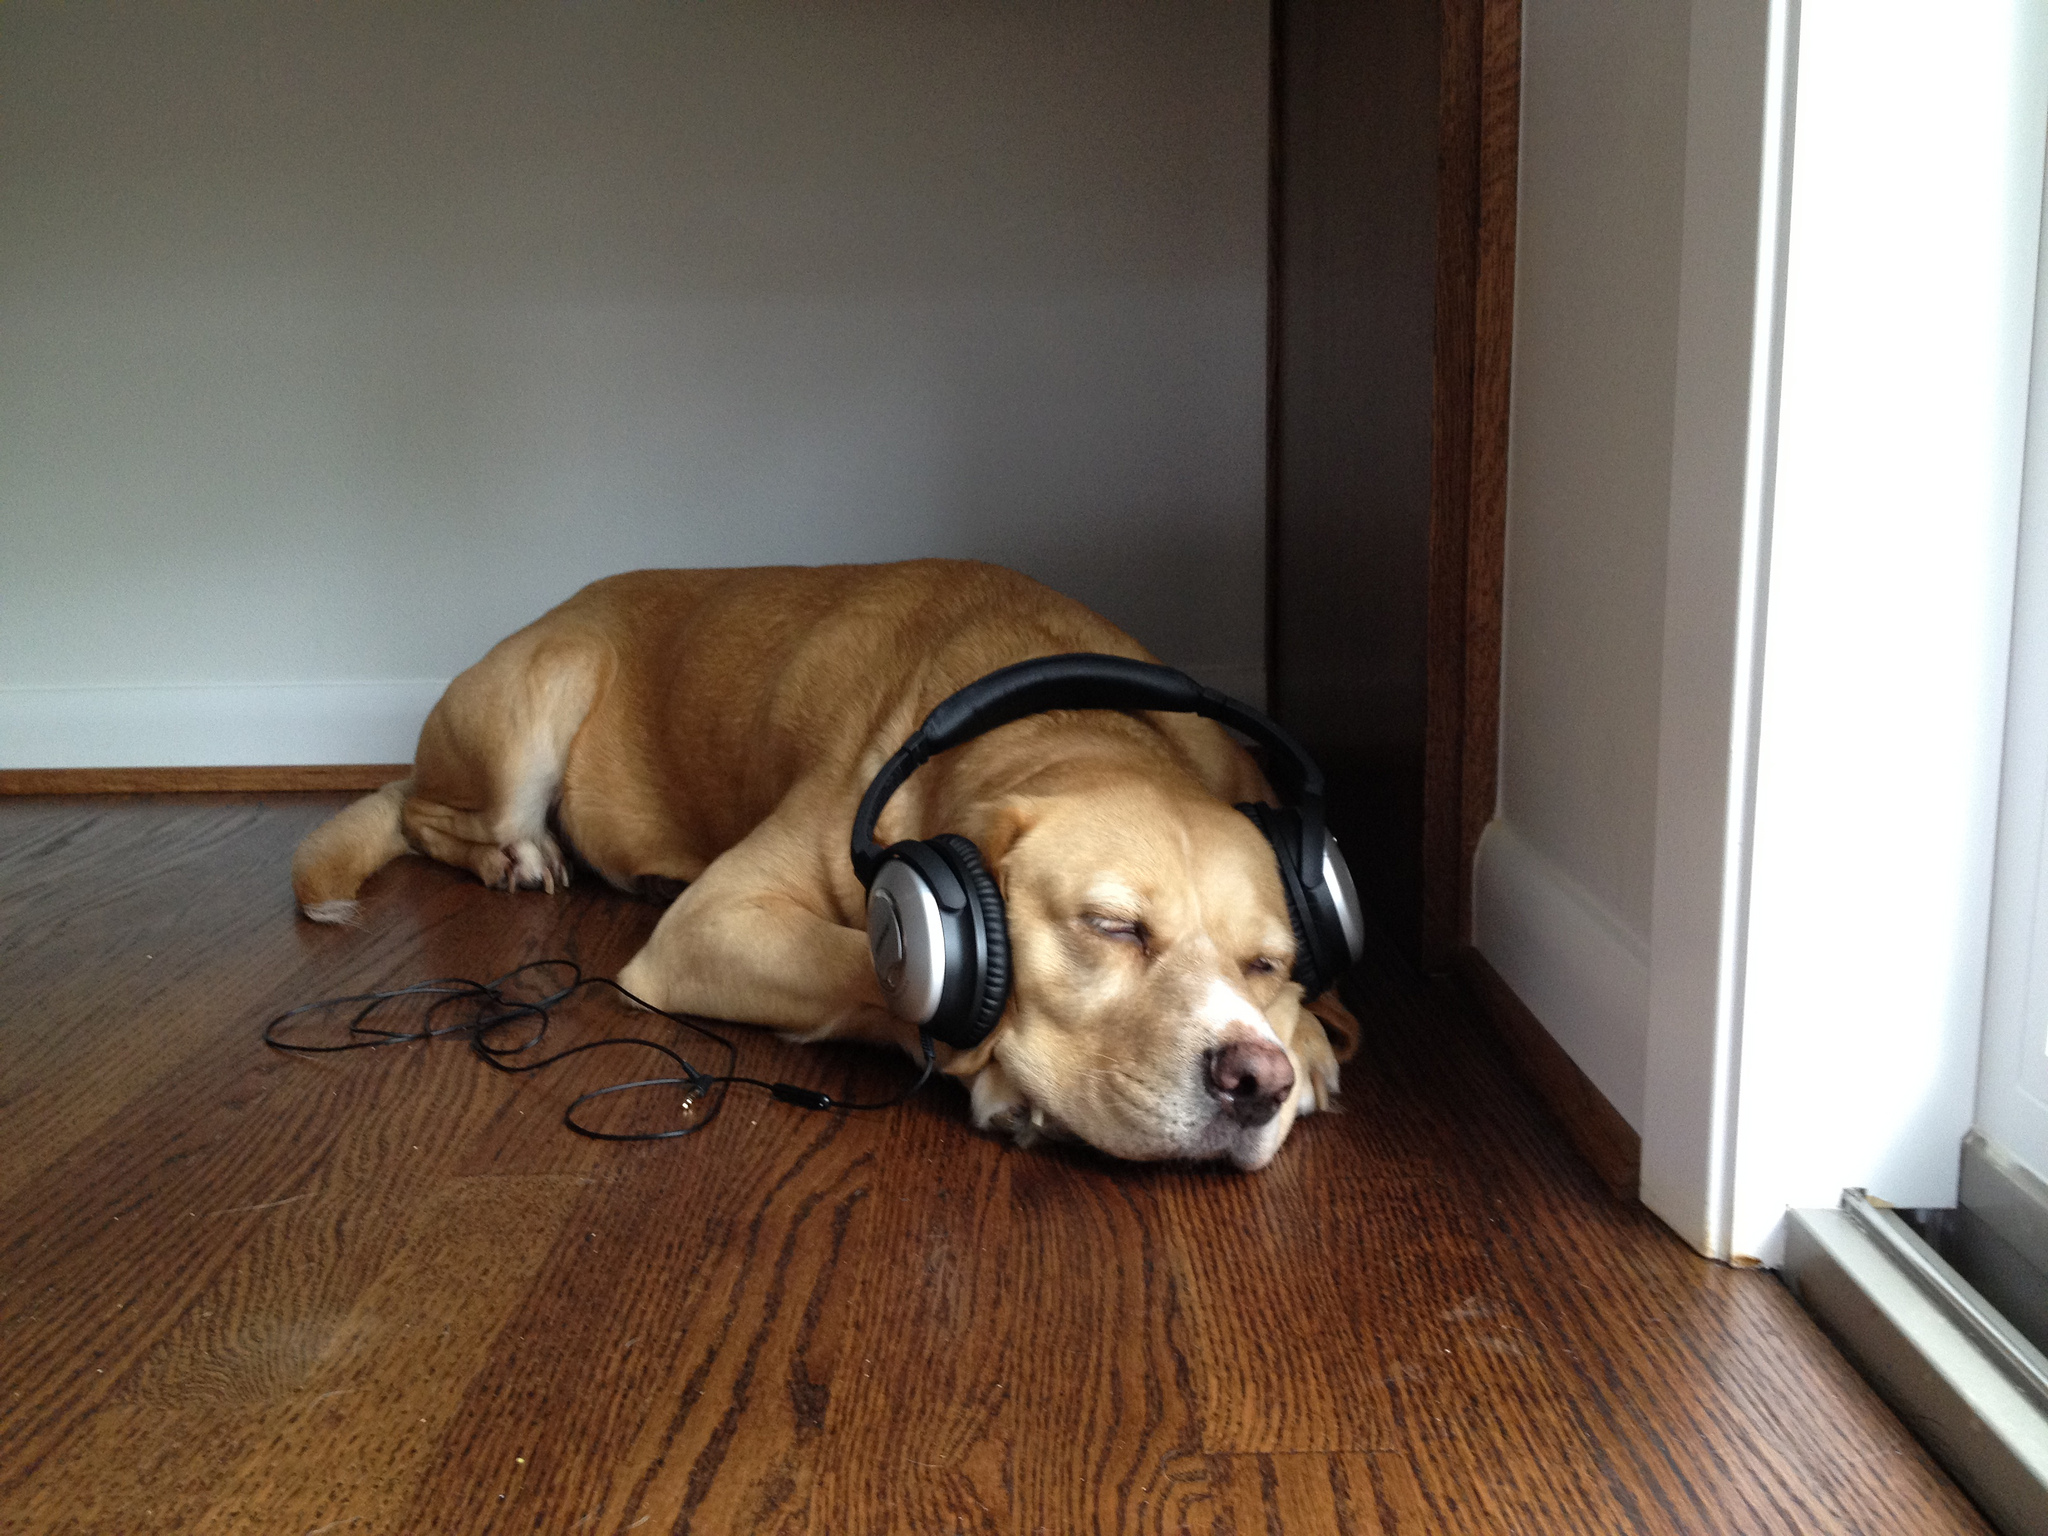 dog-headphones.jpg